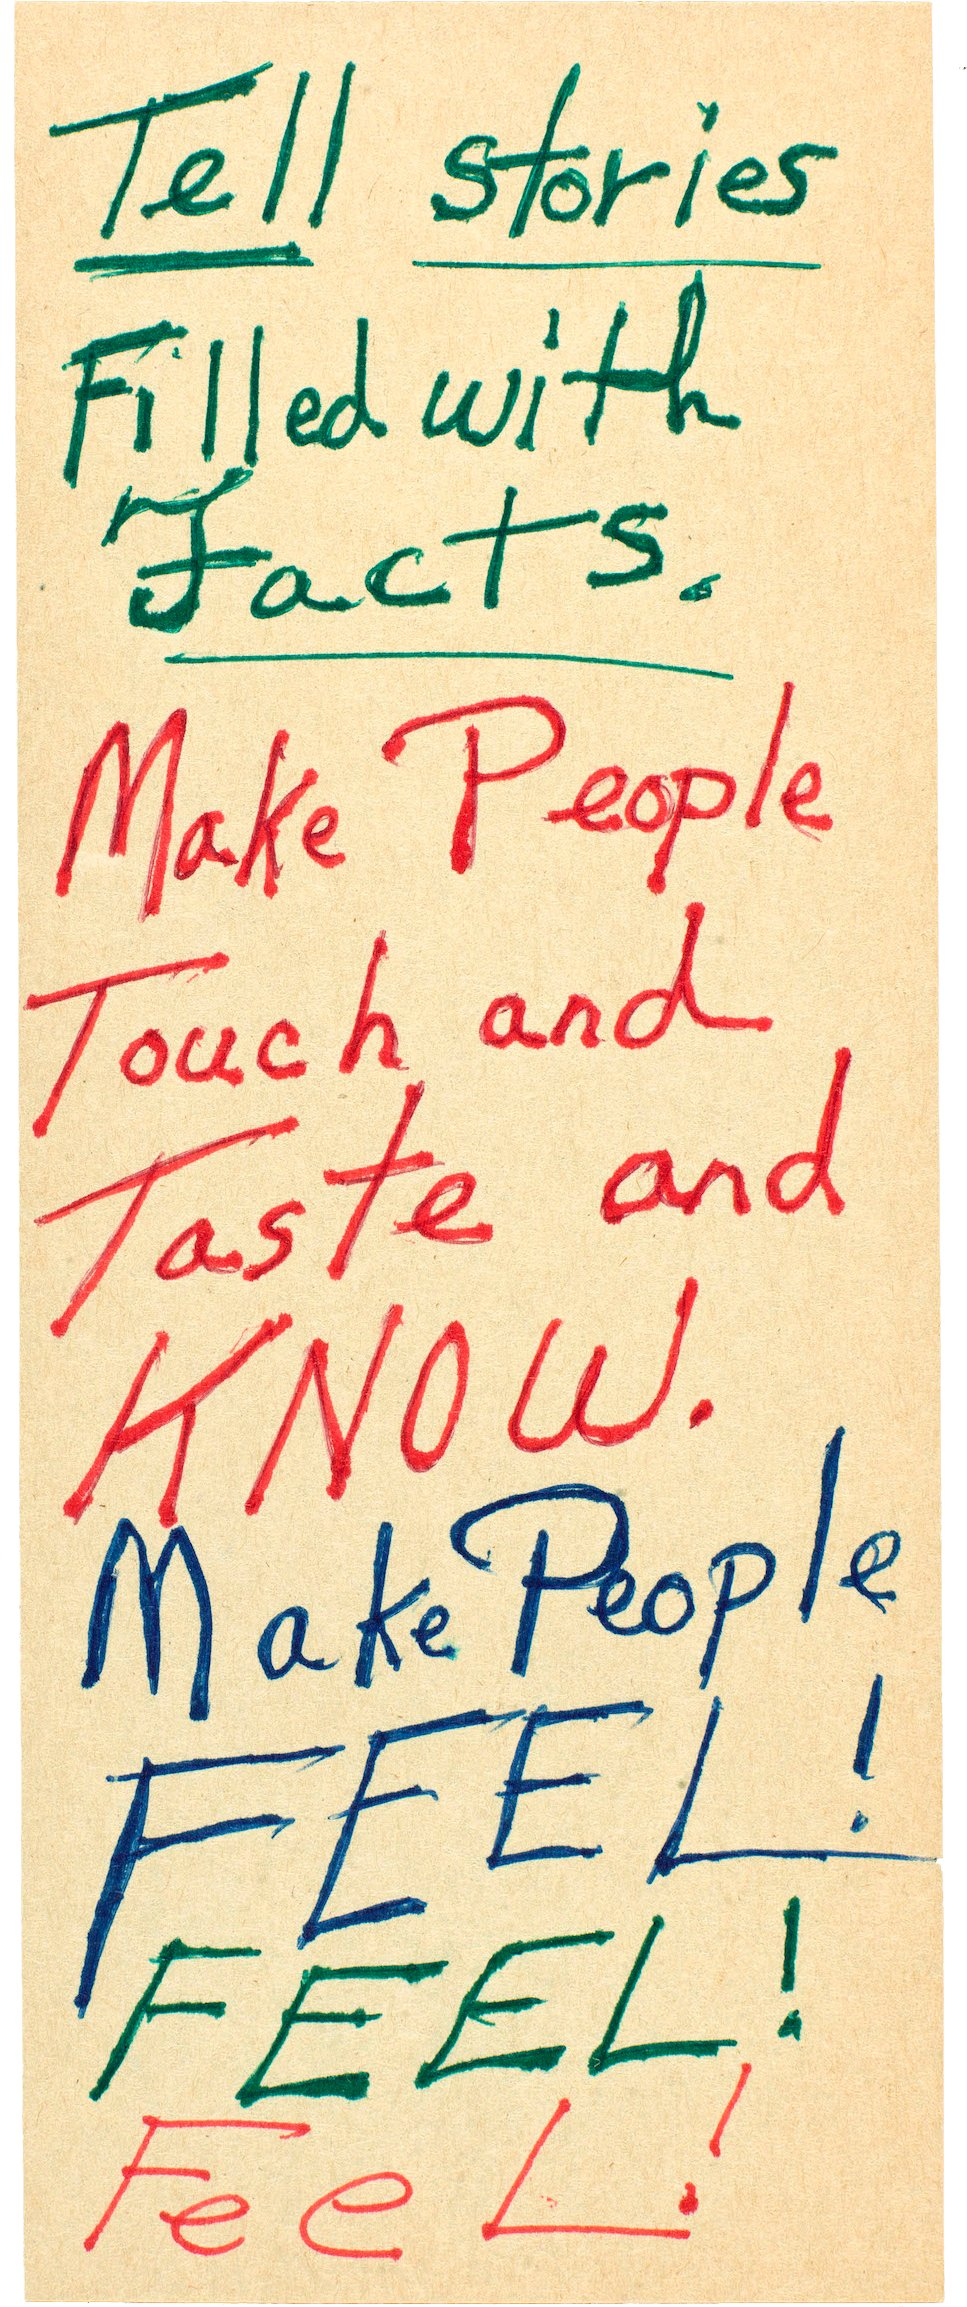 """One of Octavia E. Butler's Notes to herself, it reads """"Tell stories Filled with Facts. Make People Touch and Taste and KNOW. Make People Feel! Feel! Feel!"""